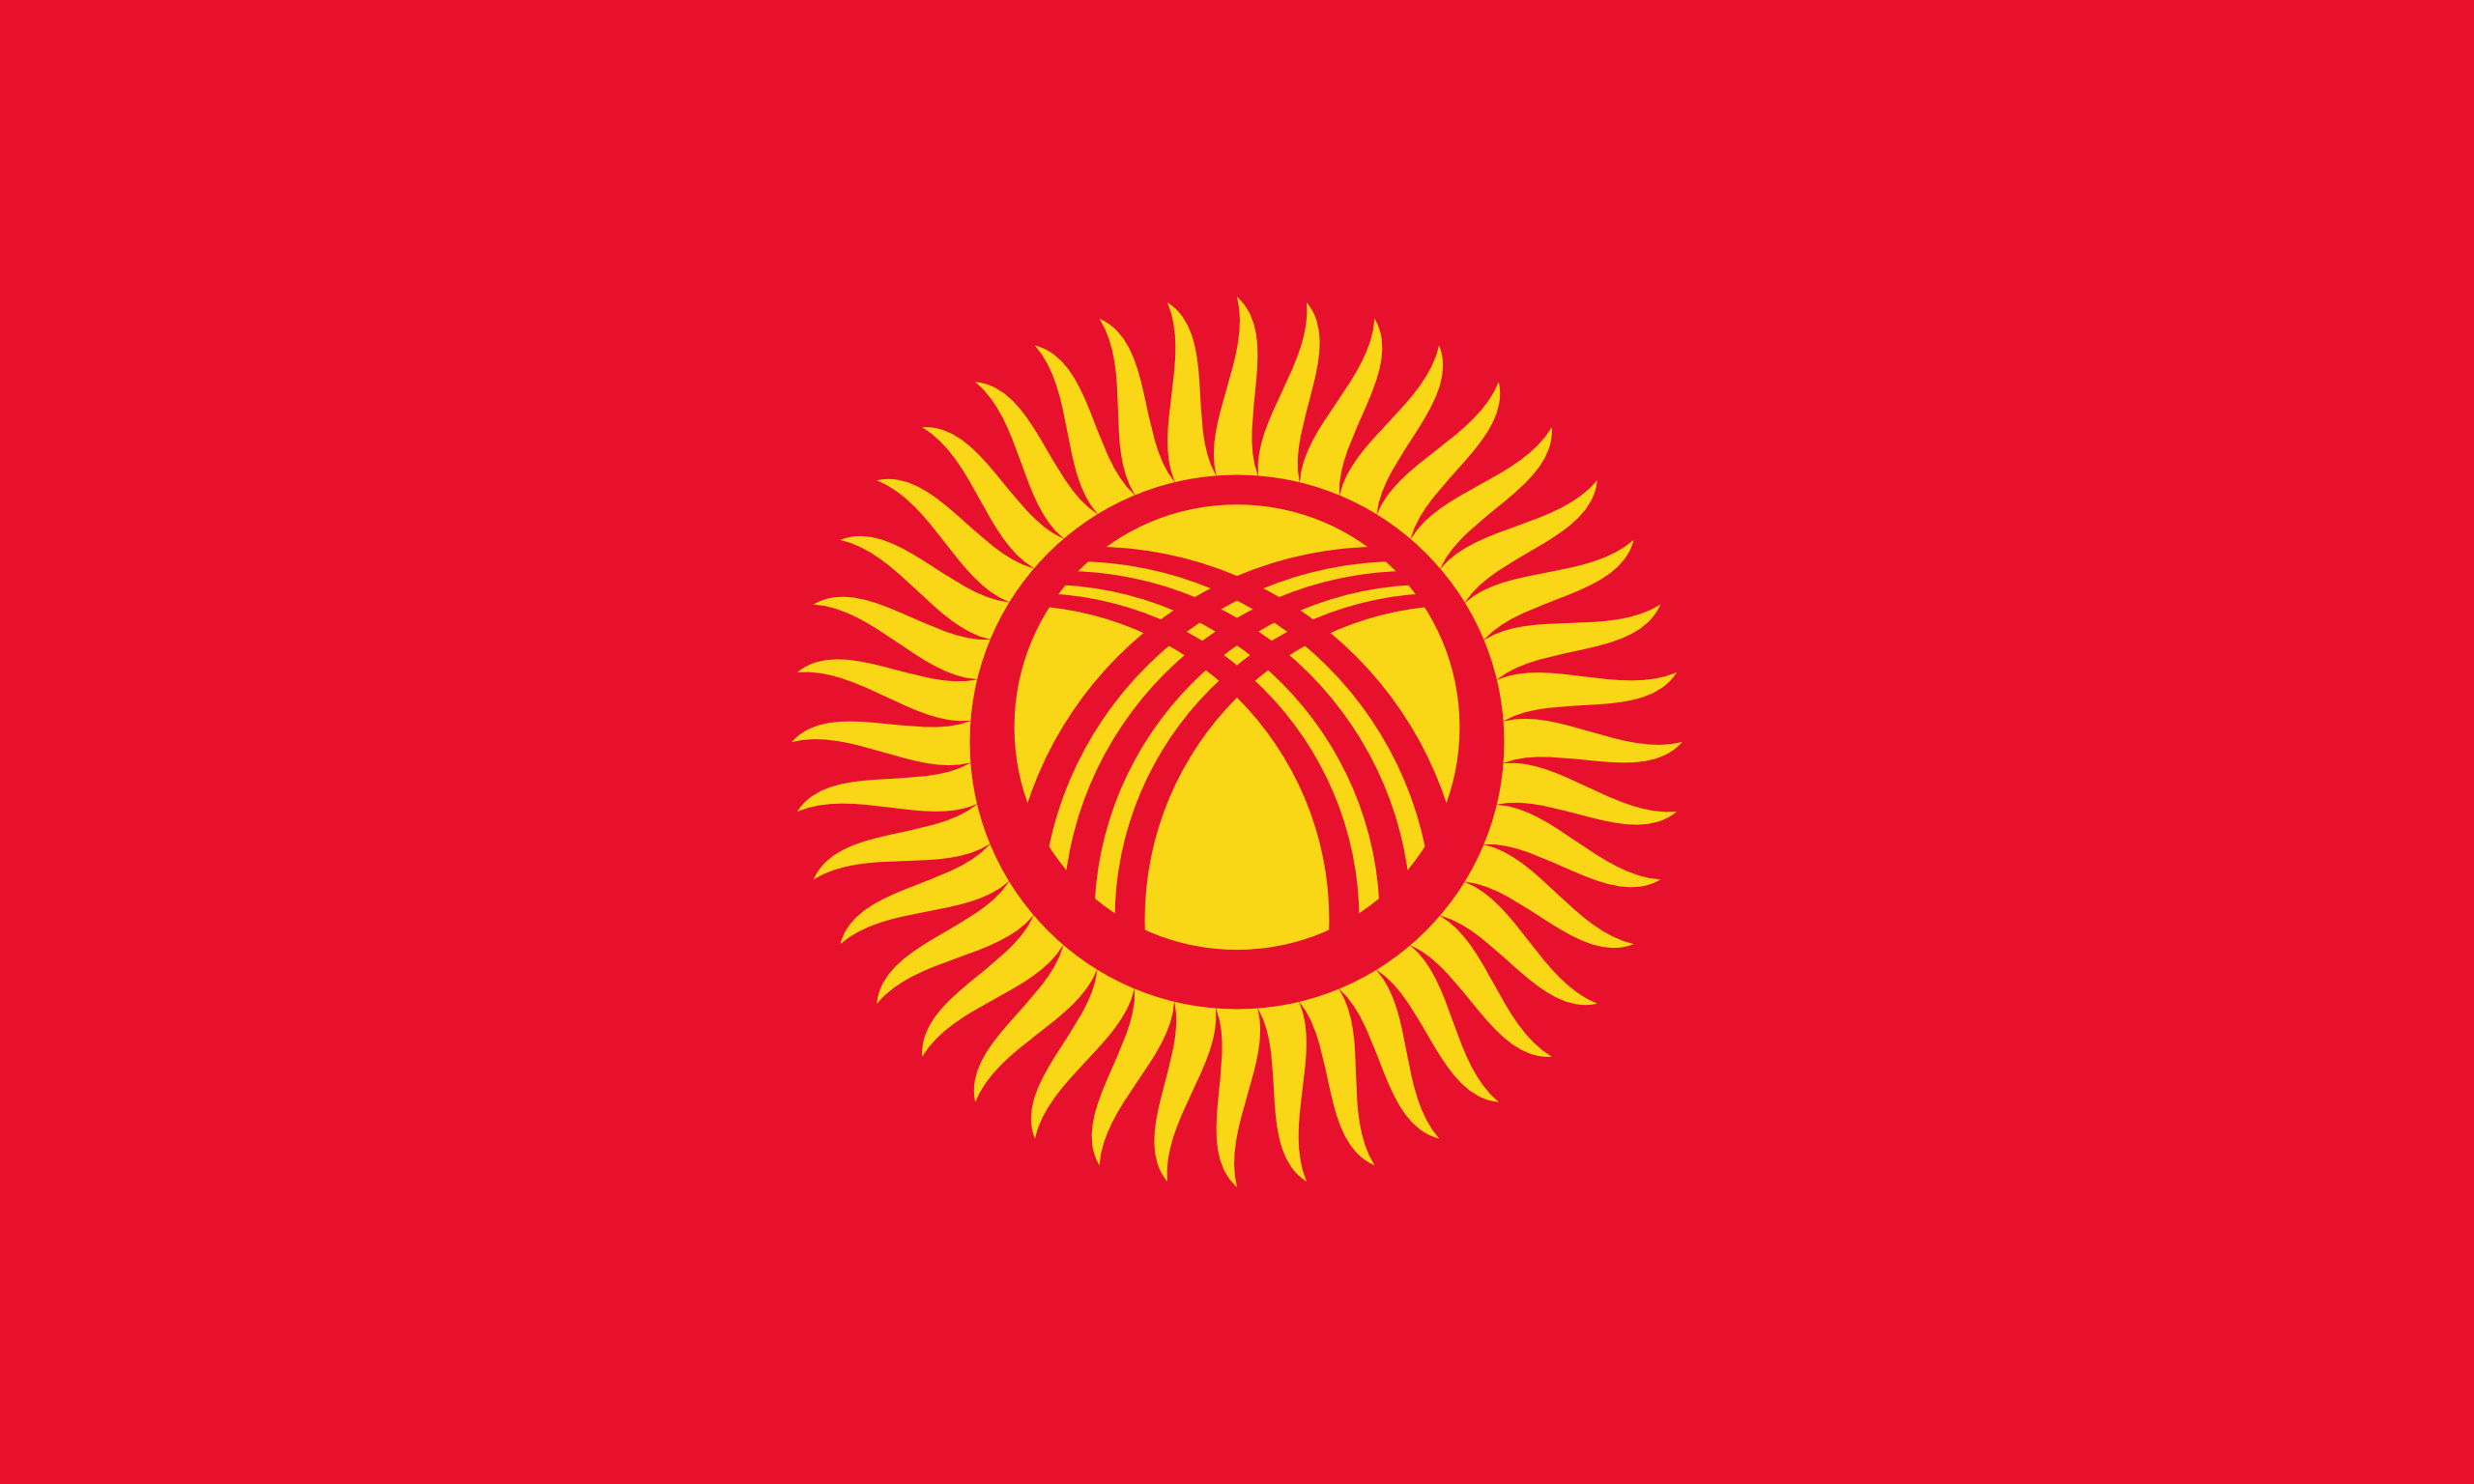 The flag of kyrgyzstan he 40 rays or lines are the 40 tribes of asia biocorpaavc Images